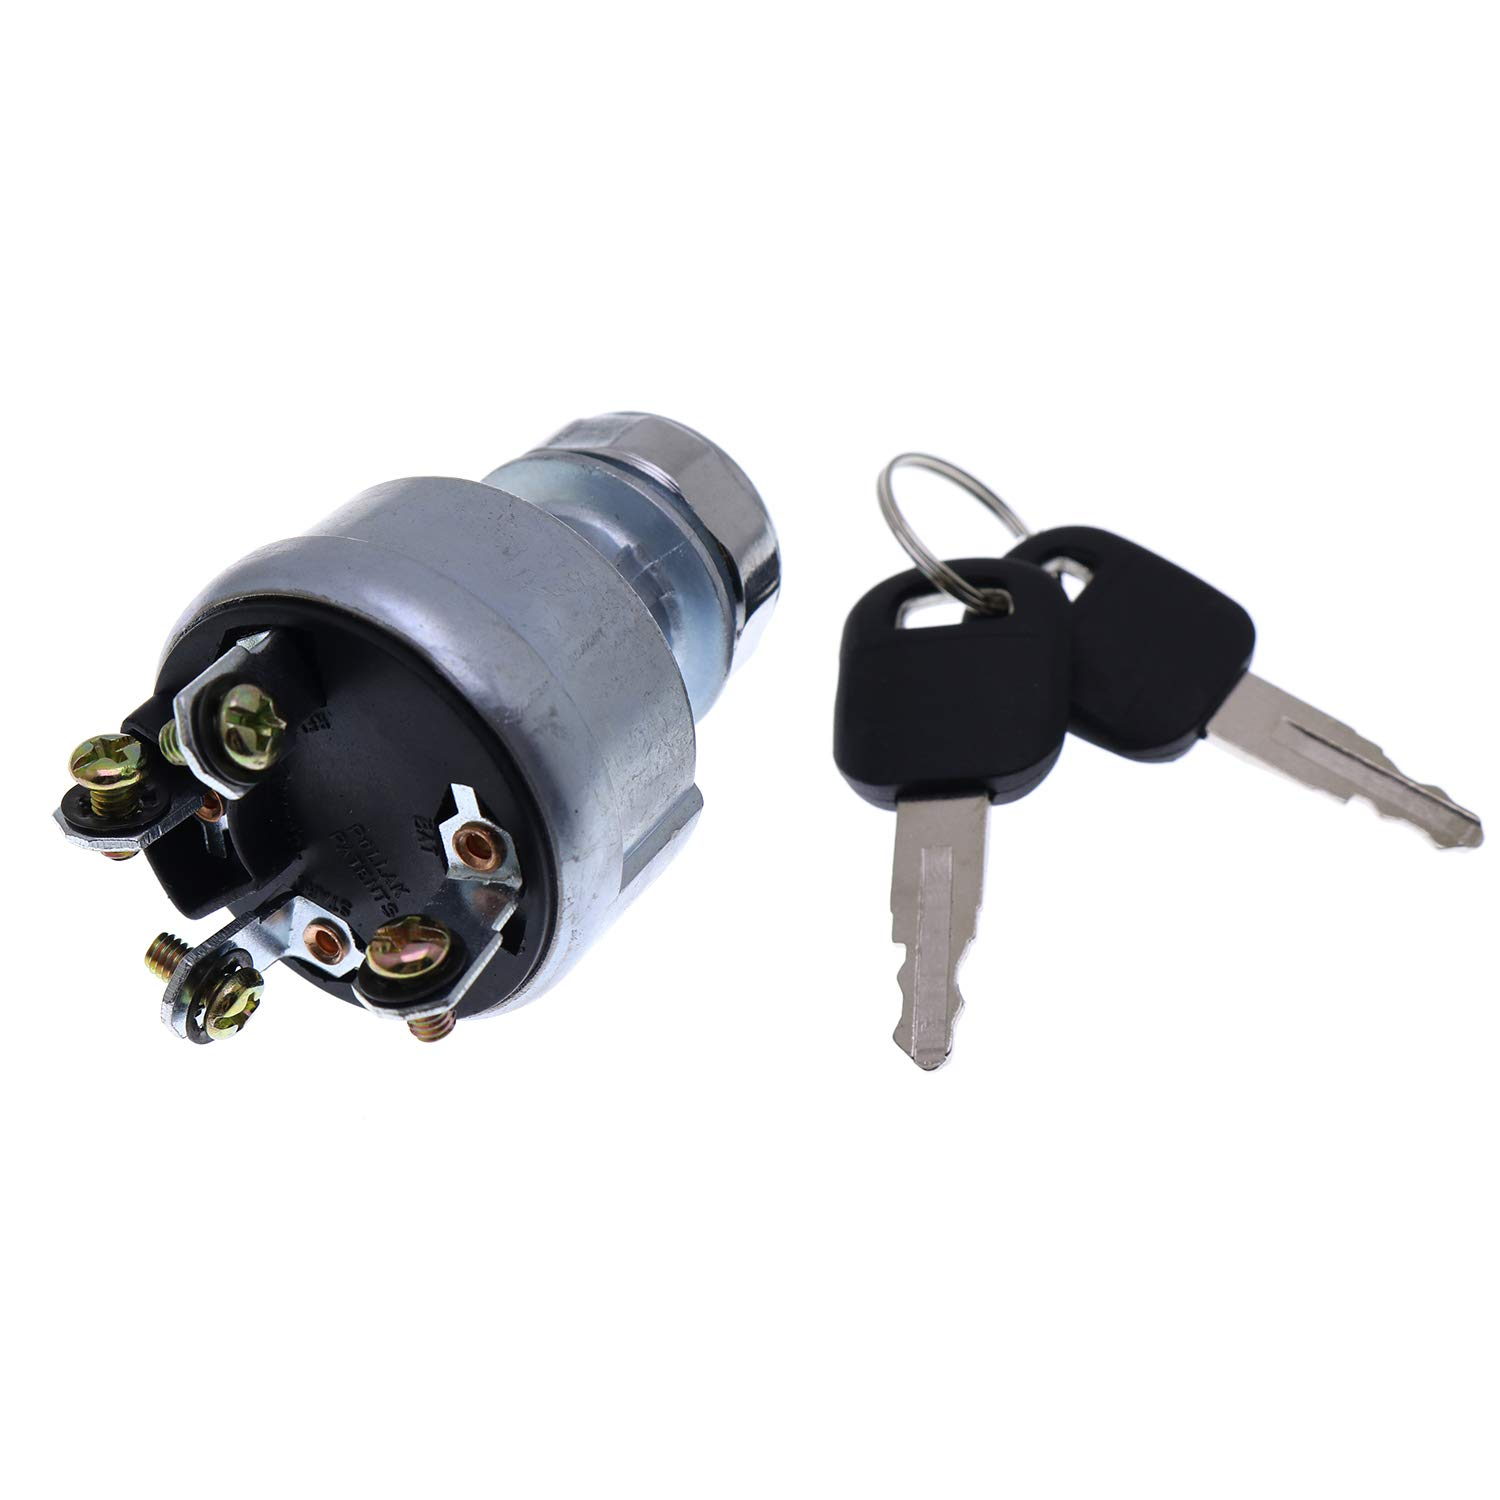 Details about  /For CATERPILLAR Excavator CAT E320C E330C New 4 wire ignition switch 9G7641